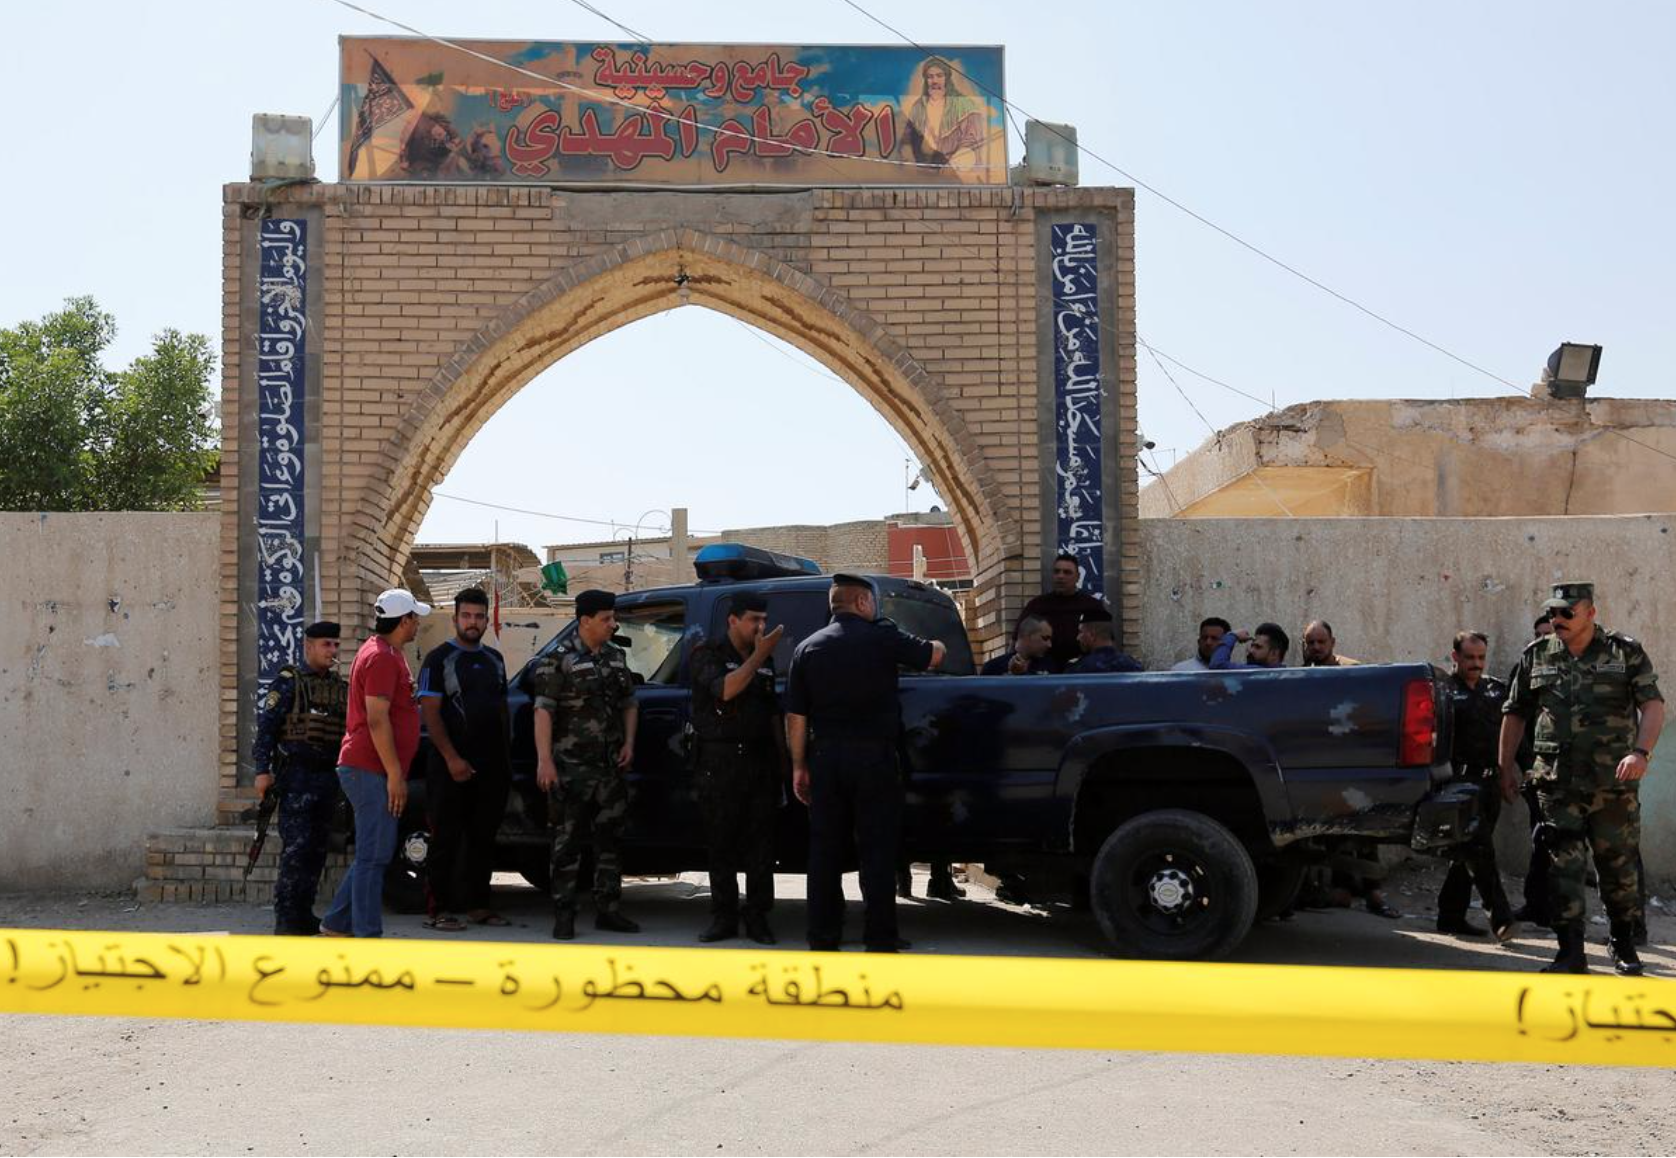 Friday blast at Shi'ite mosque in Baghdad wounds several: police sources